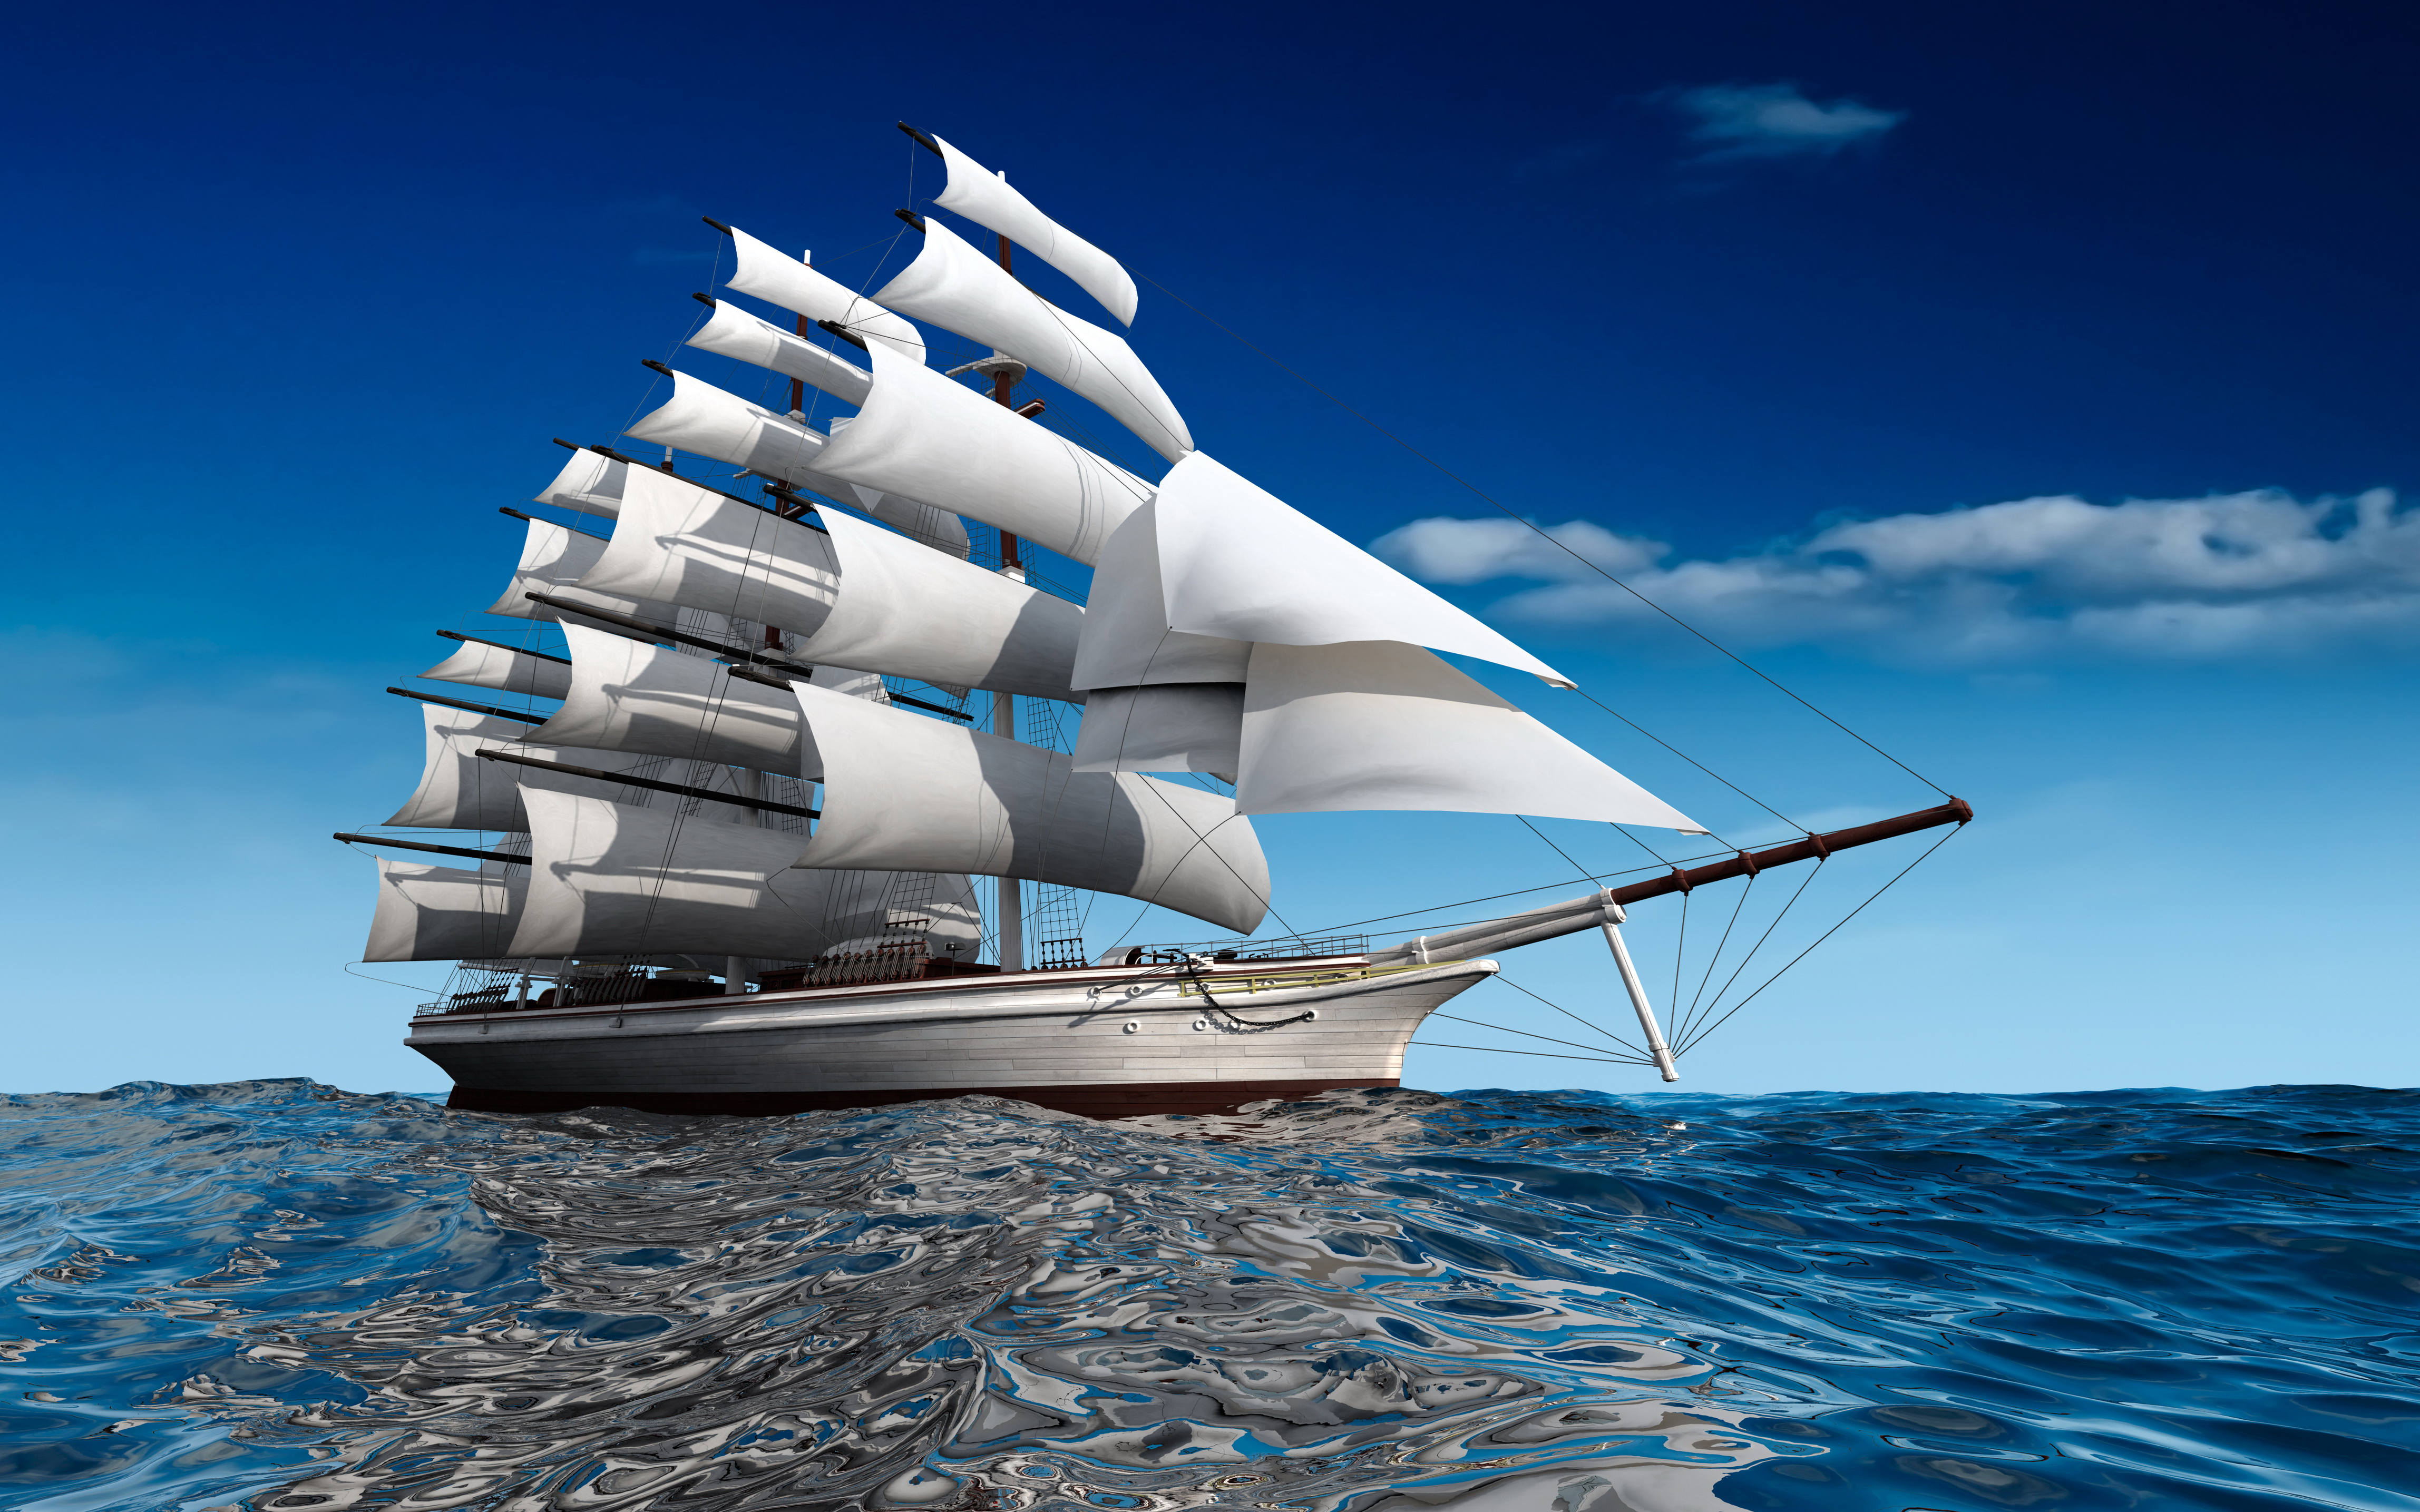 3d Ghost Wallpapers Free Ships Sailing Sea Miscellaneous 3d Graphics Wallpapers And